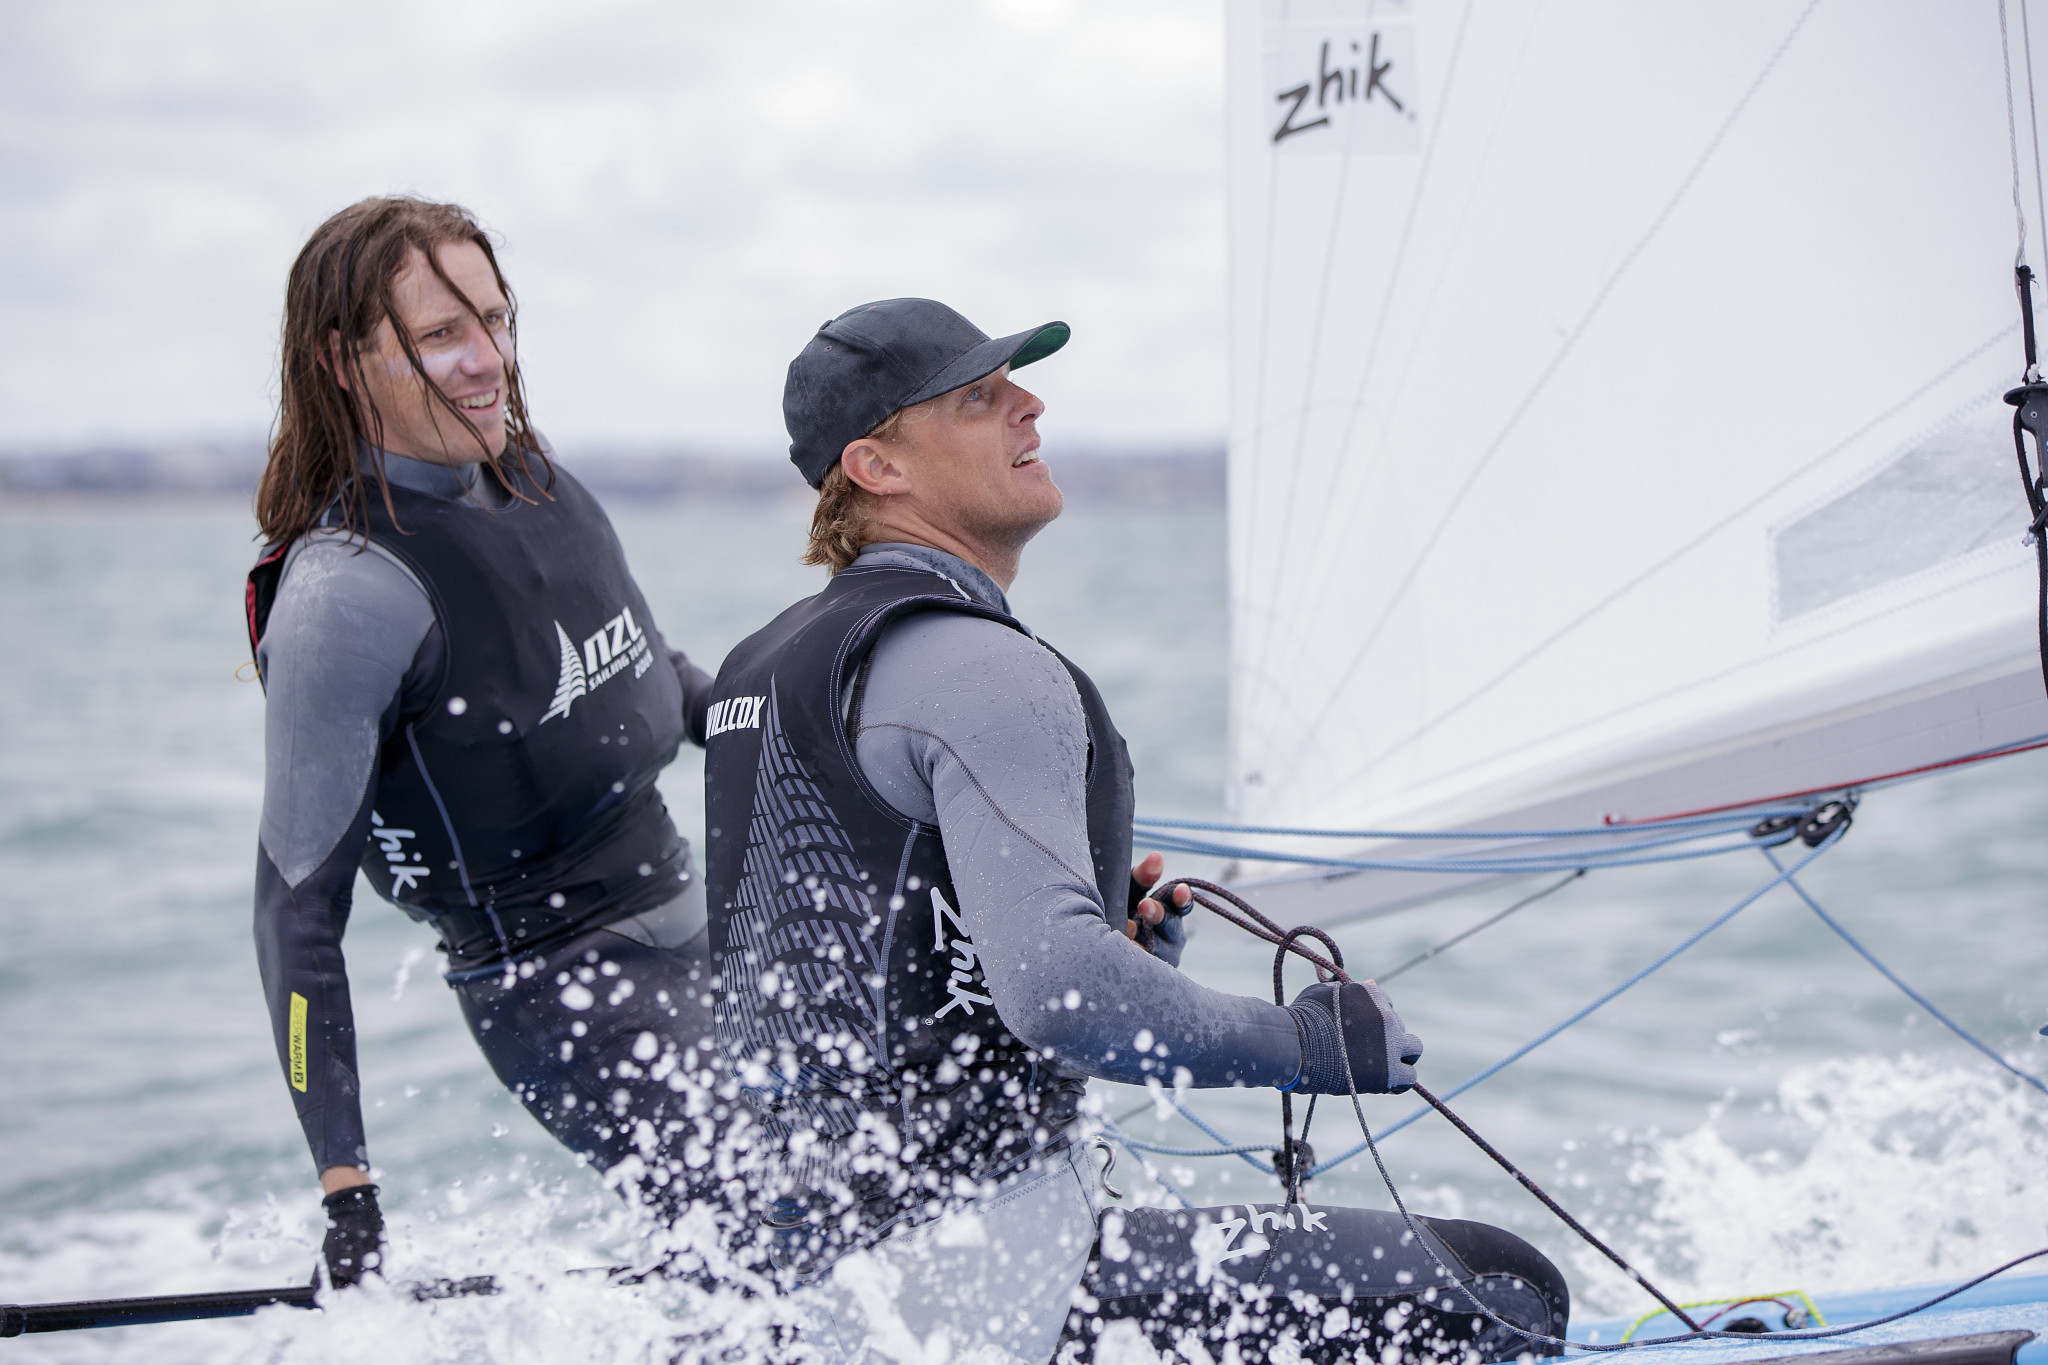 New Zealand select men's sailors for Tokyo 2020 in 470 class